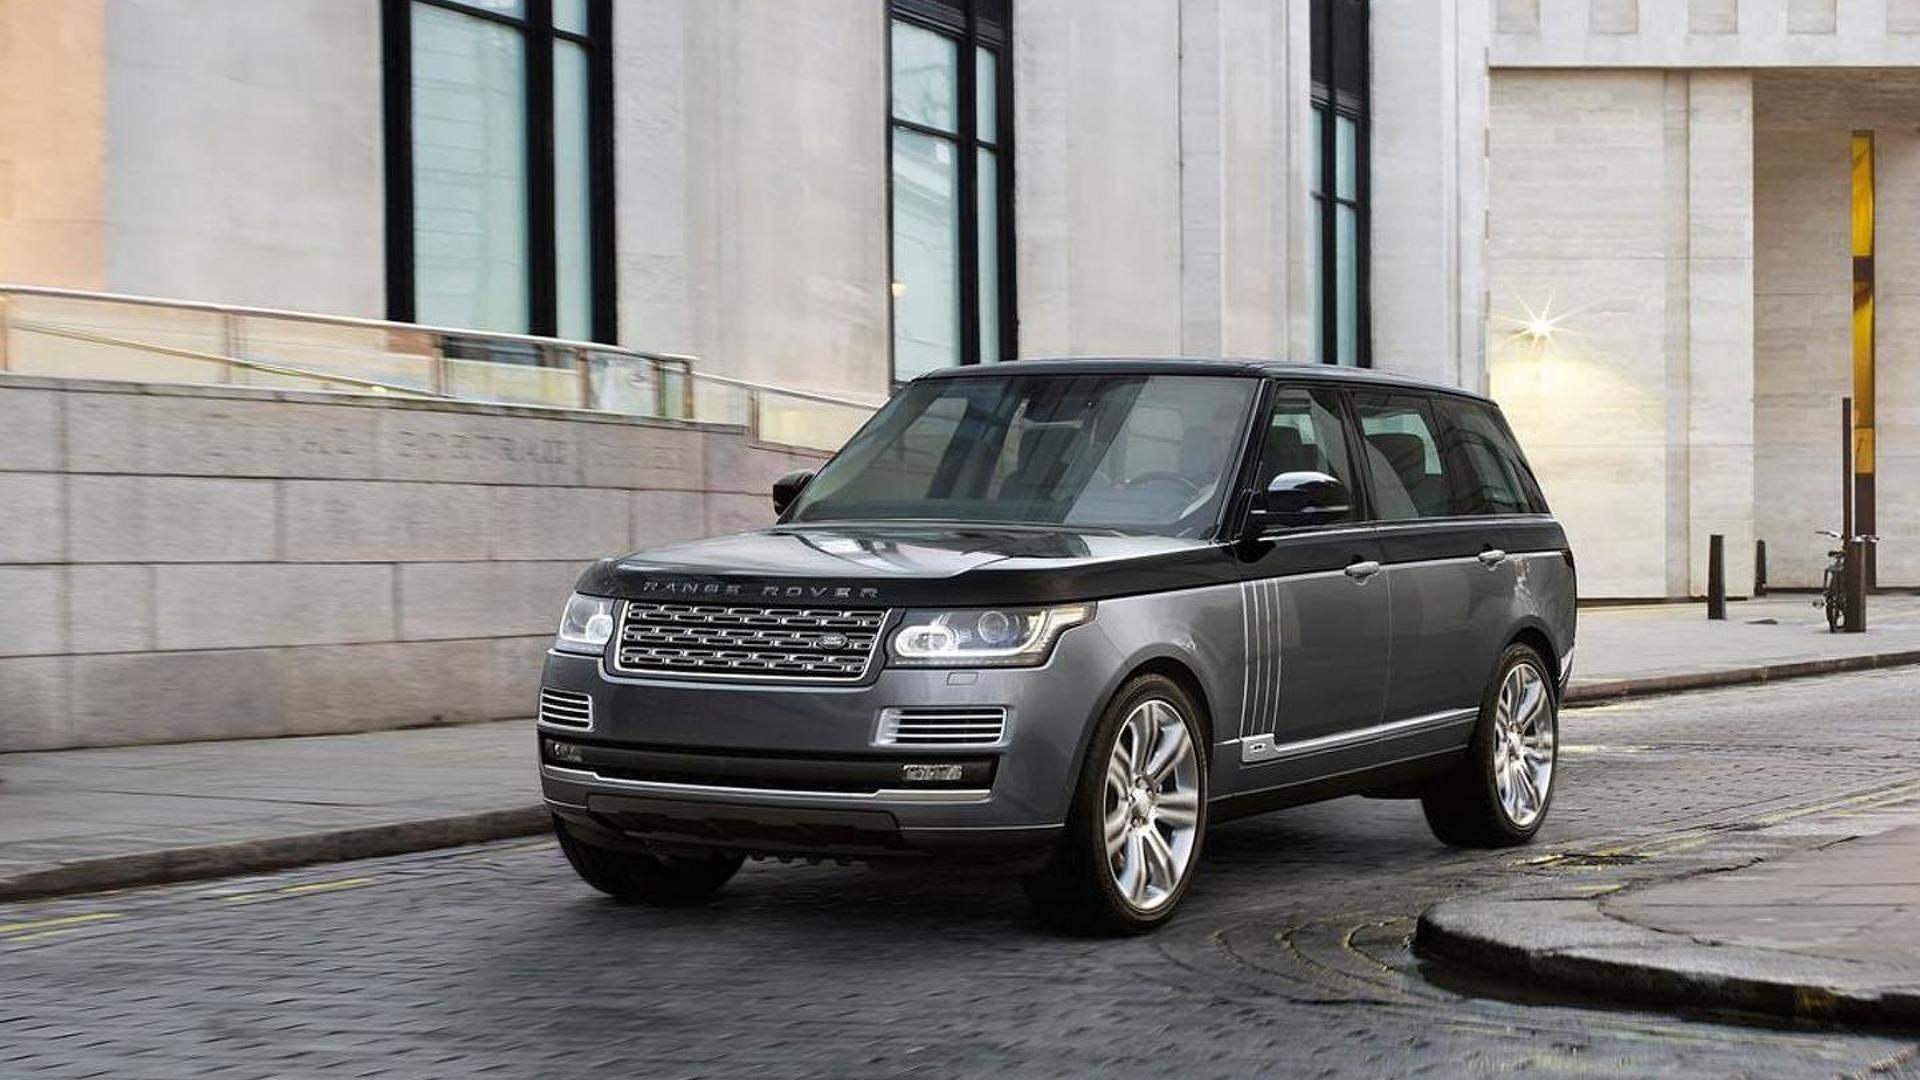 Land Rover hints the £200 000 Range Rover could be partially hand